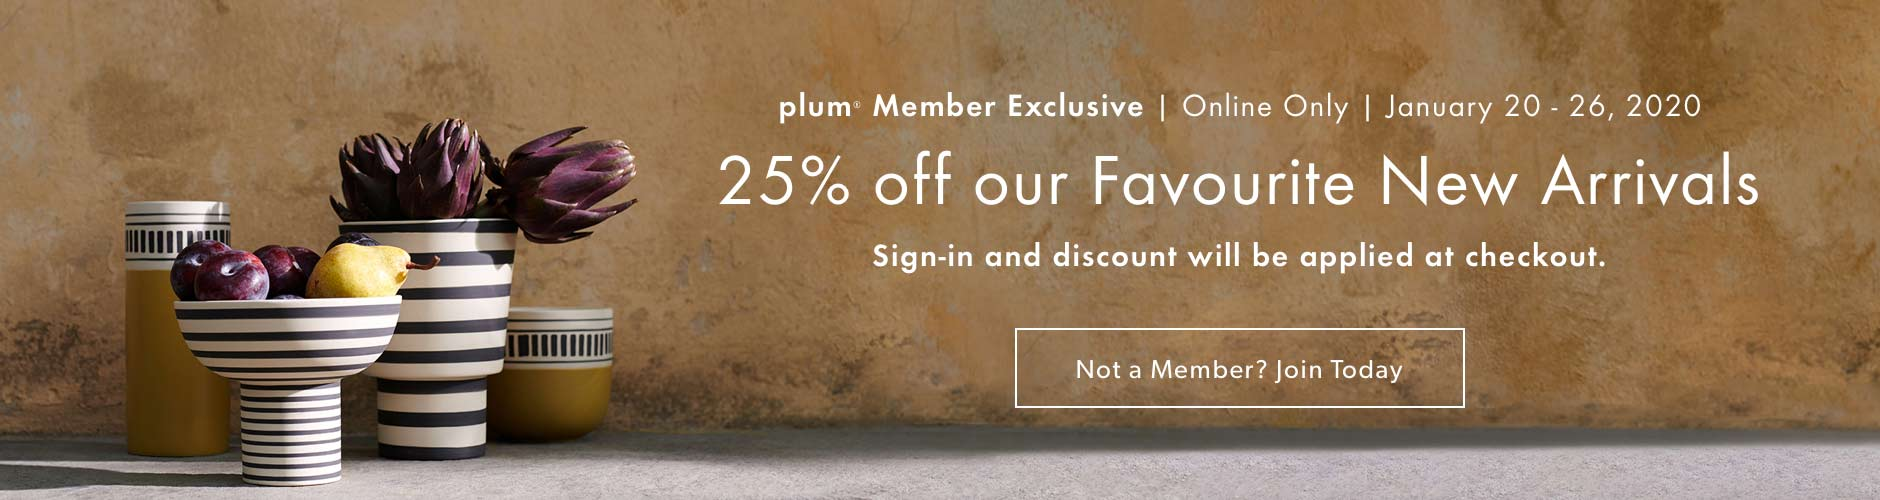 plum Member Exclusive!  25% off our Favourite New Arrivals. January 20 - 26, 2020